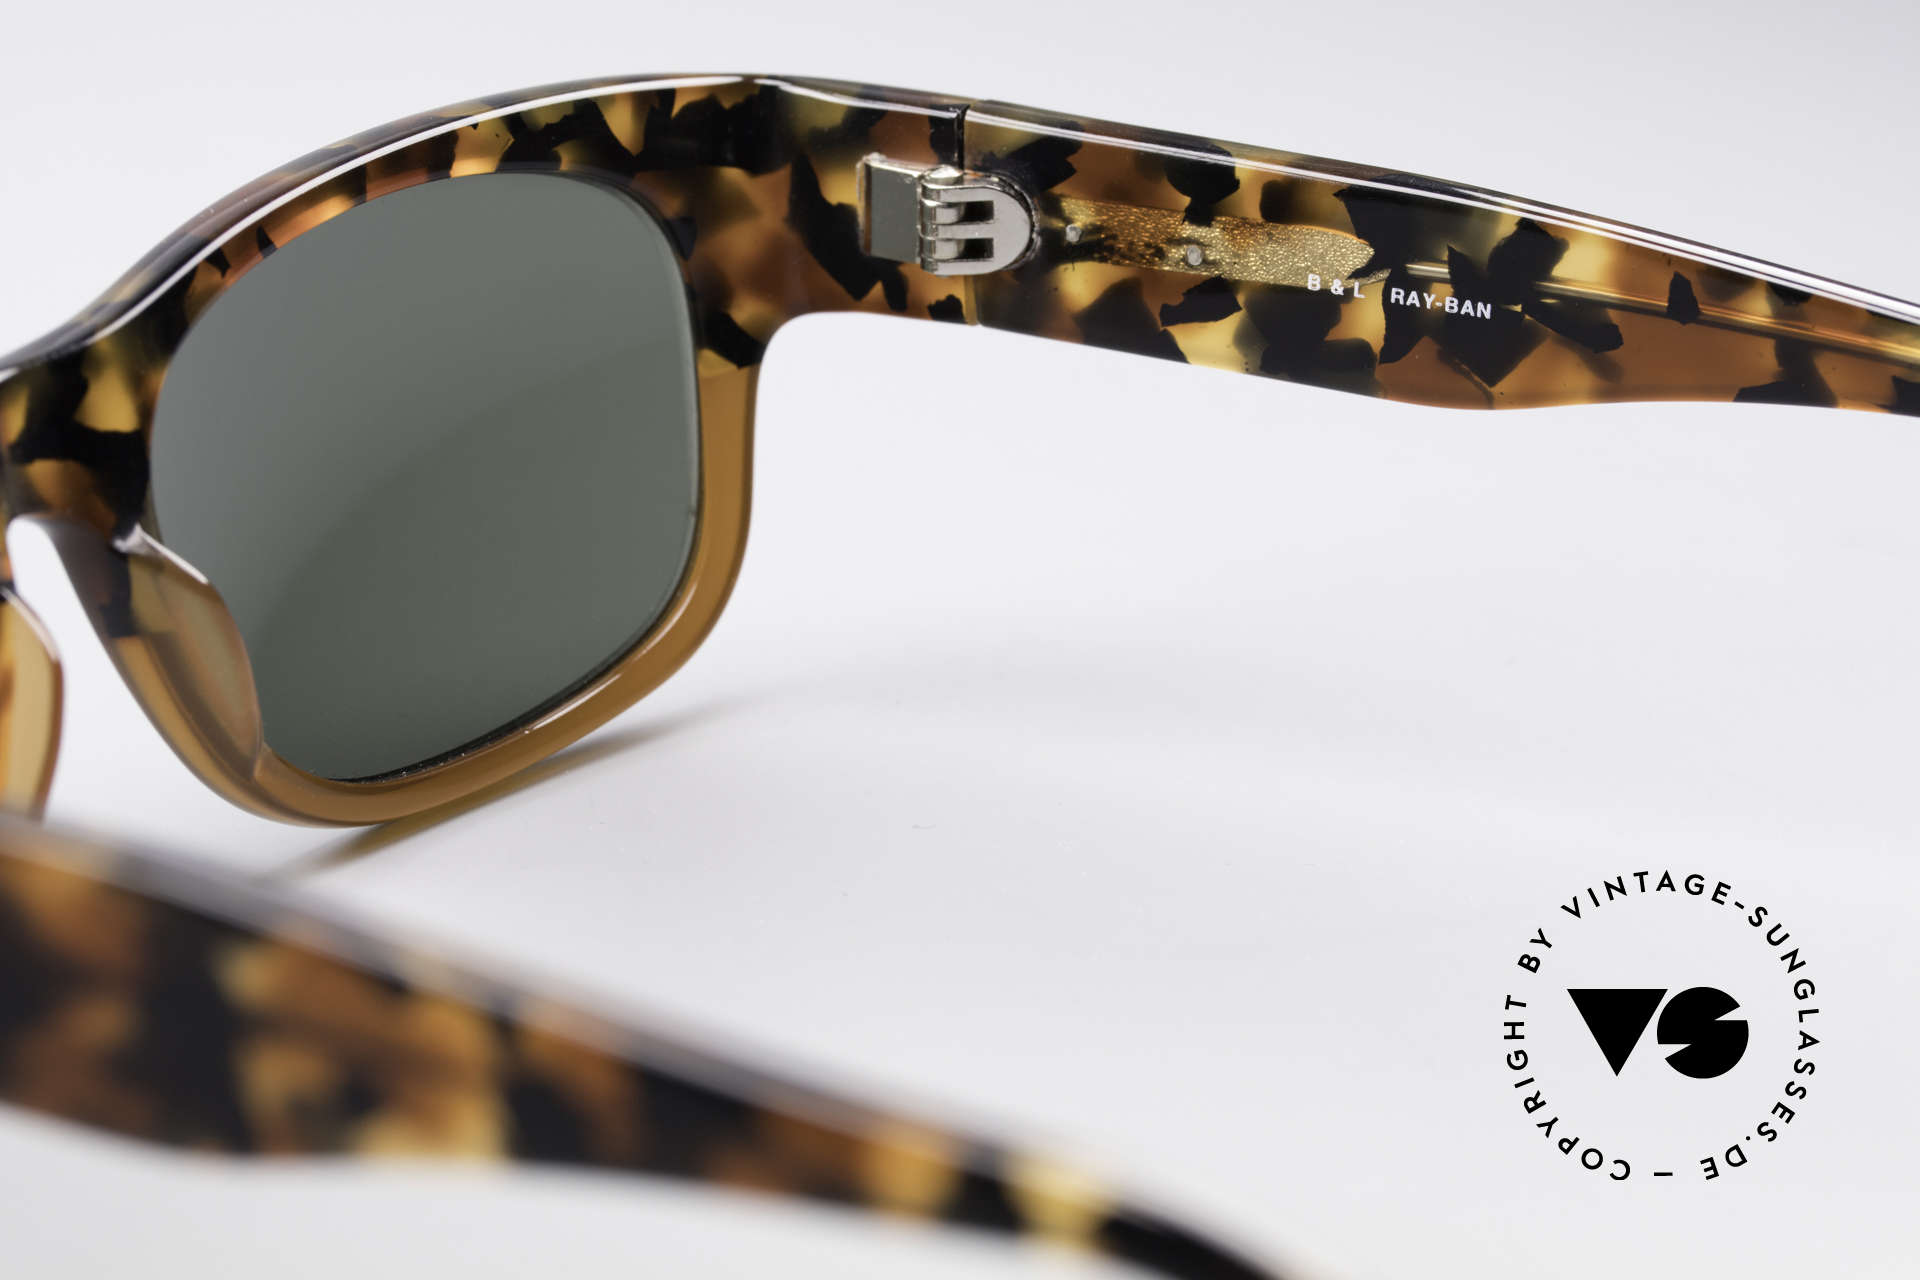 Ray Ban Bohemian Bausch & Lomb USA Glasses, NO retro glasses, but an old B&L USA-original, Made for Men and Women